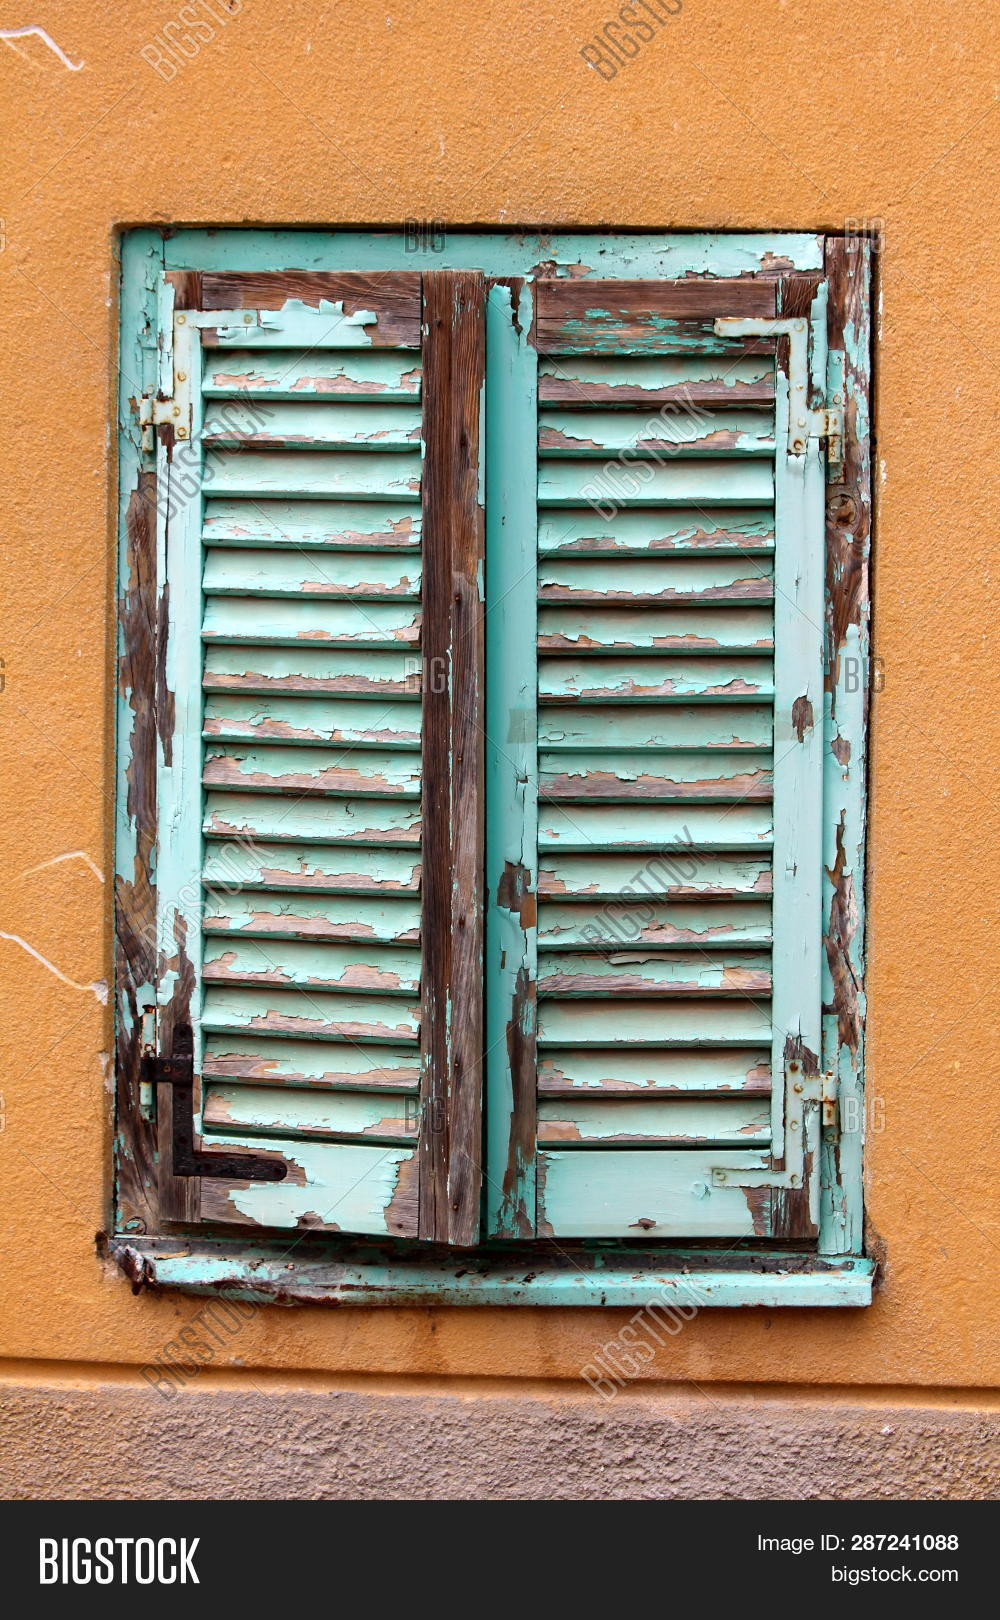 Dilapidated Old Closed Image Photo Free Trial Bigstock